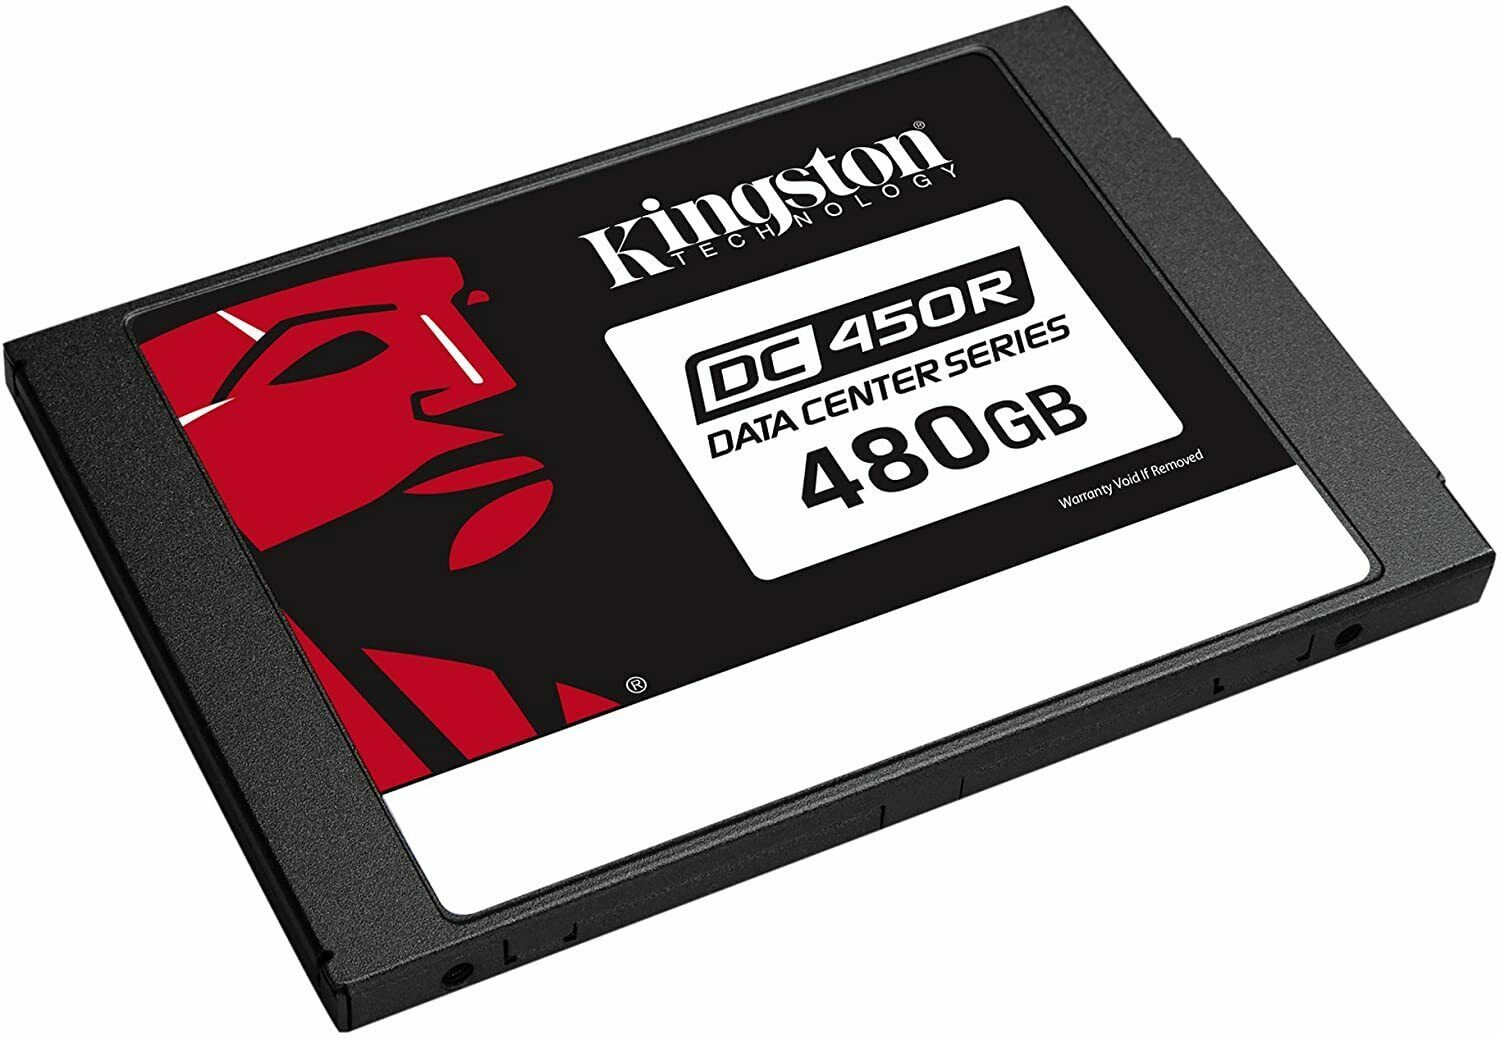 "Primary image for Kingston - DC450R - 480 GB SSD - 2.5"" Internal - SATA (SATA/600) - Read Intensiv"